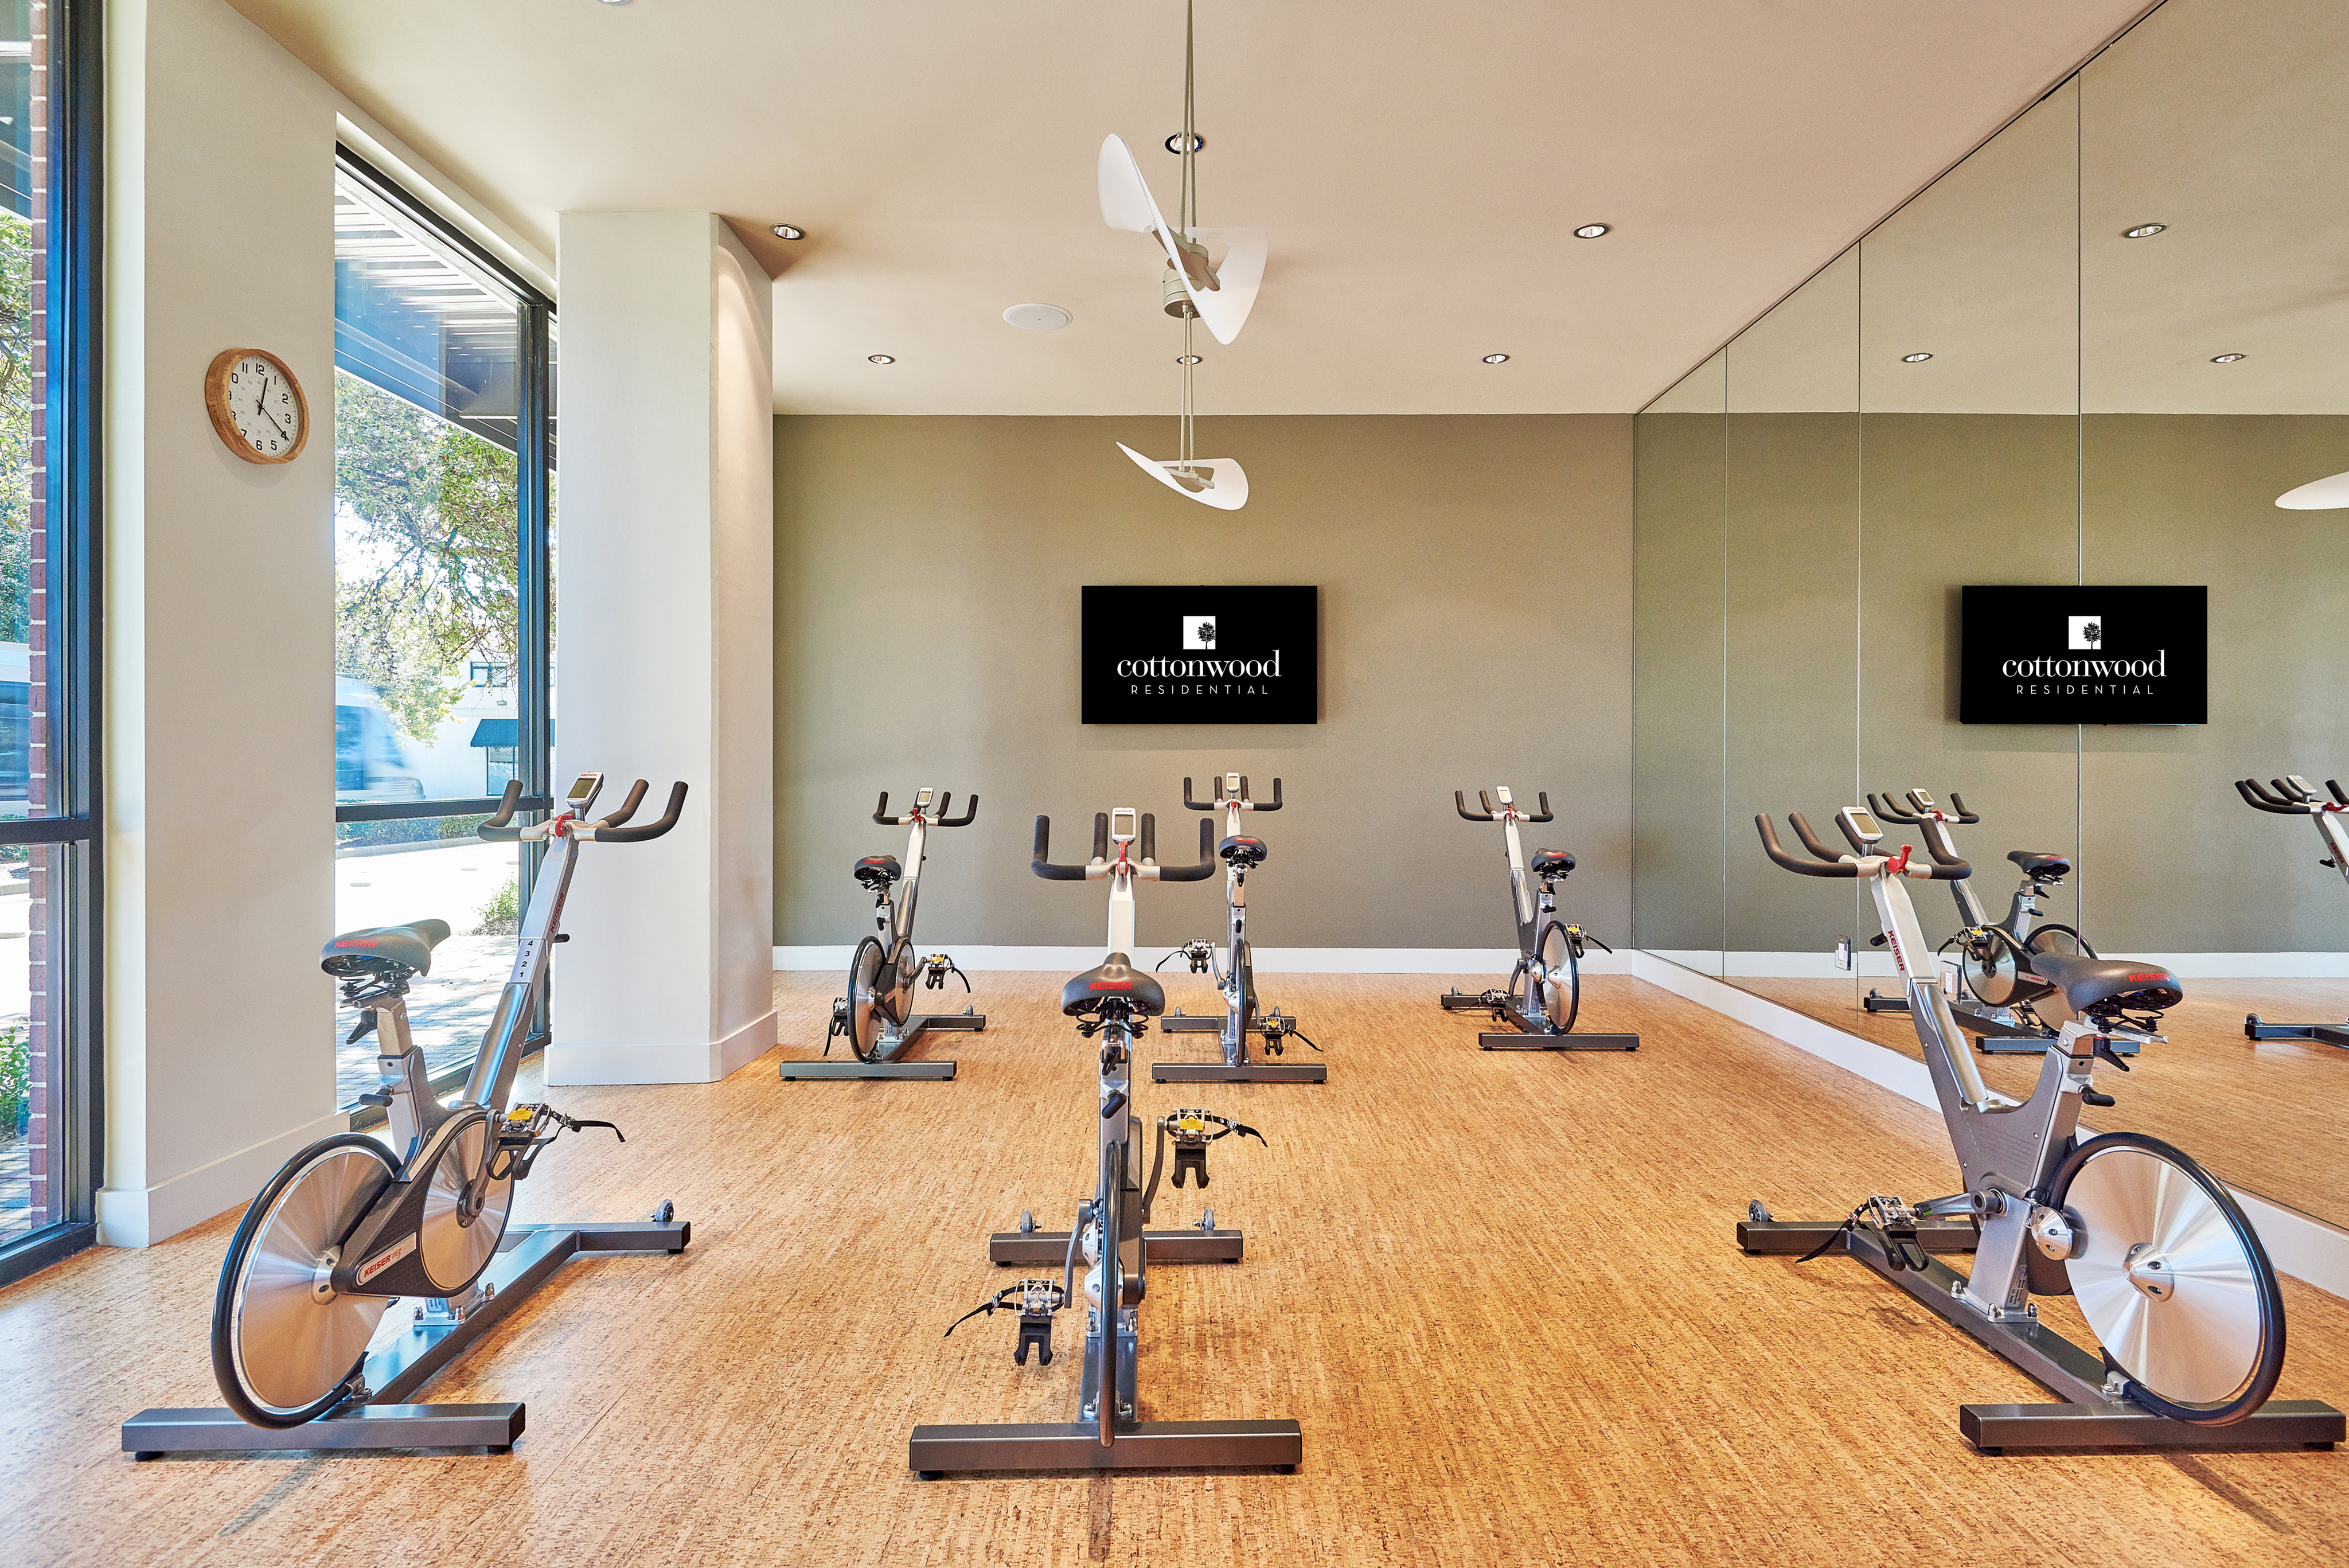 View of Spinning Room, Showing Stationary Cycles, TV, and Mirrors at 3800 Main Apartments